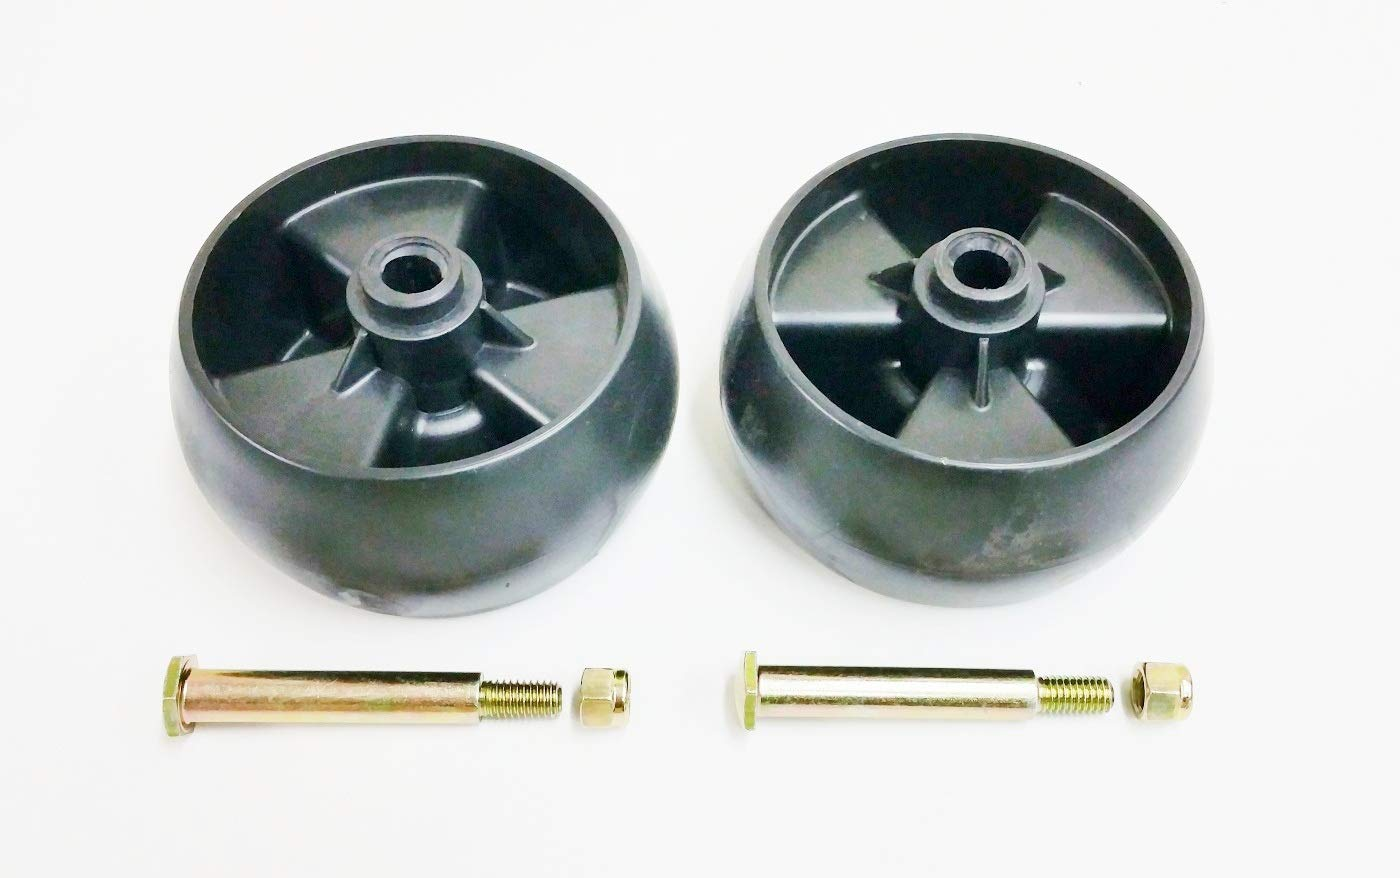 Set of 2, Deck Wheels Replace 734-04155, Bolt Replaces 938-3056 Plus  Locknuts  MTD, Cub Cadet, Troy Bilt, White